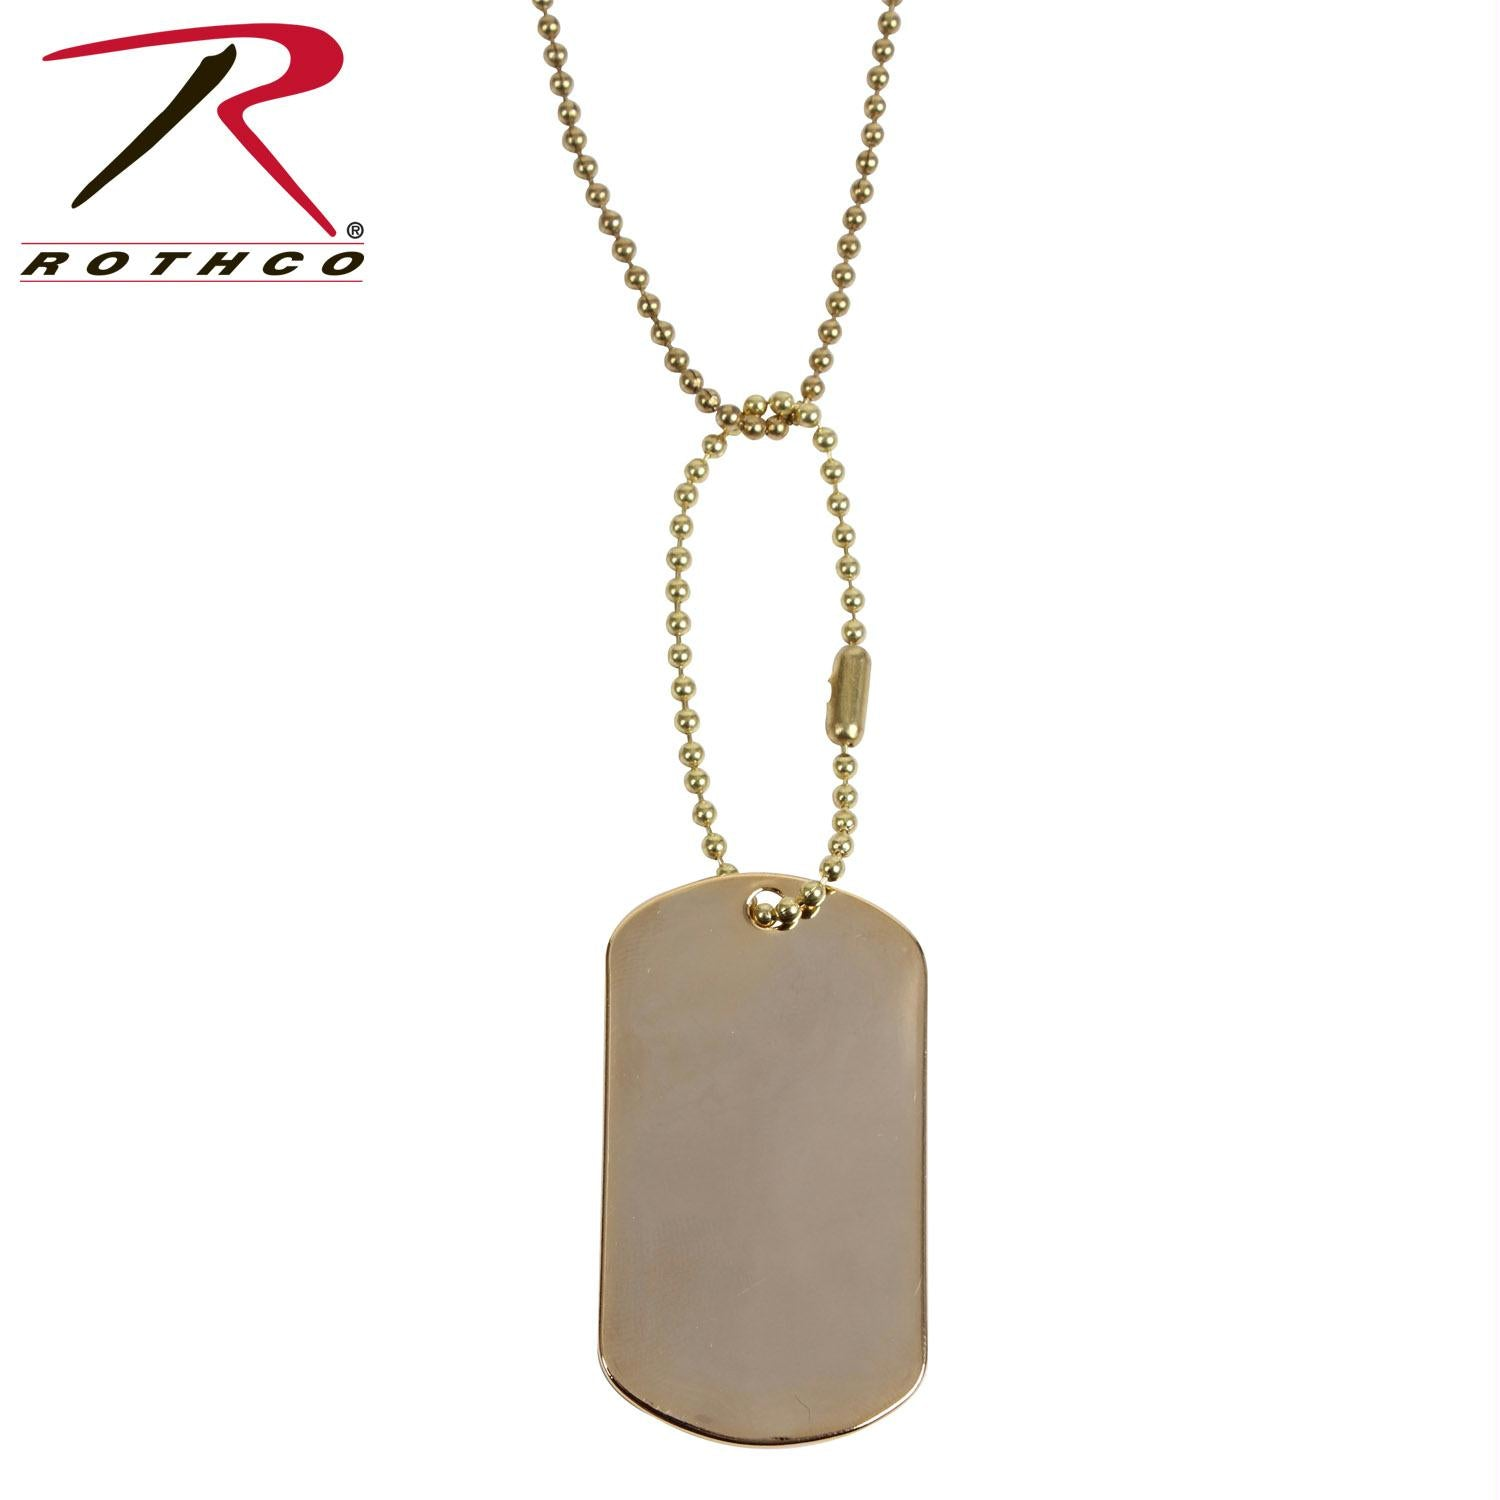 Rothco G.I. Type Dog Tag - Gold